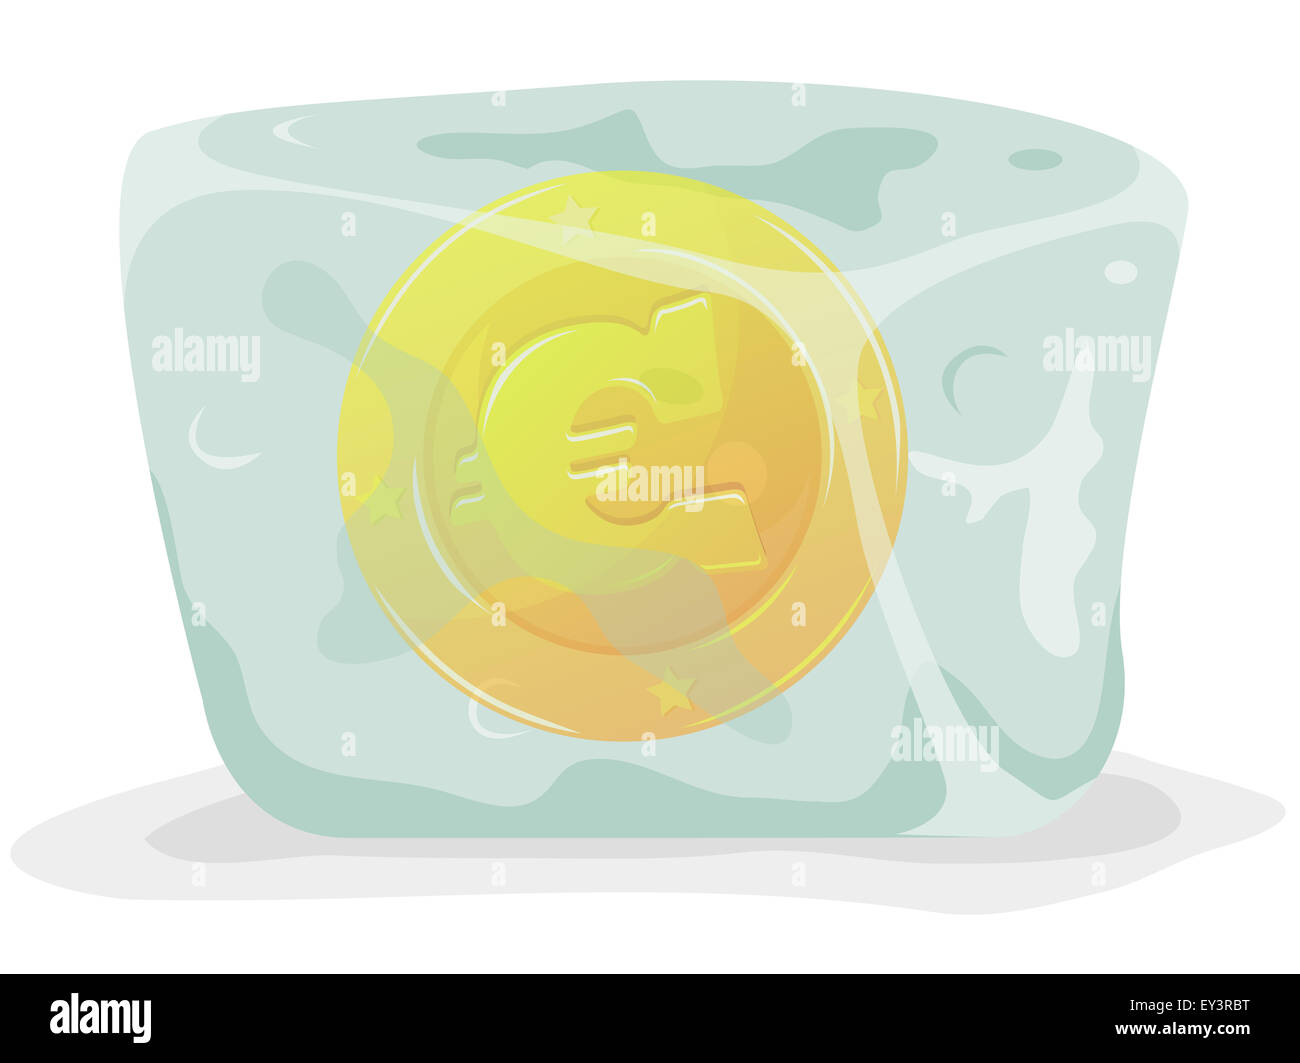 Illustration Of A Gold Euro Currency Coin Frozen Inside Cartoon